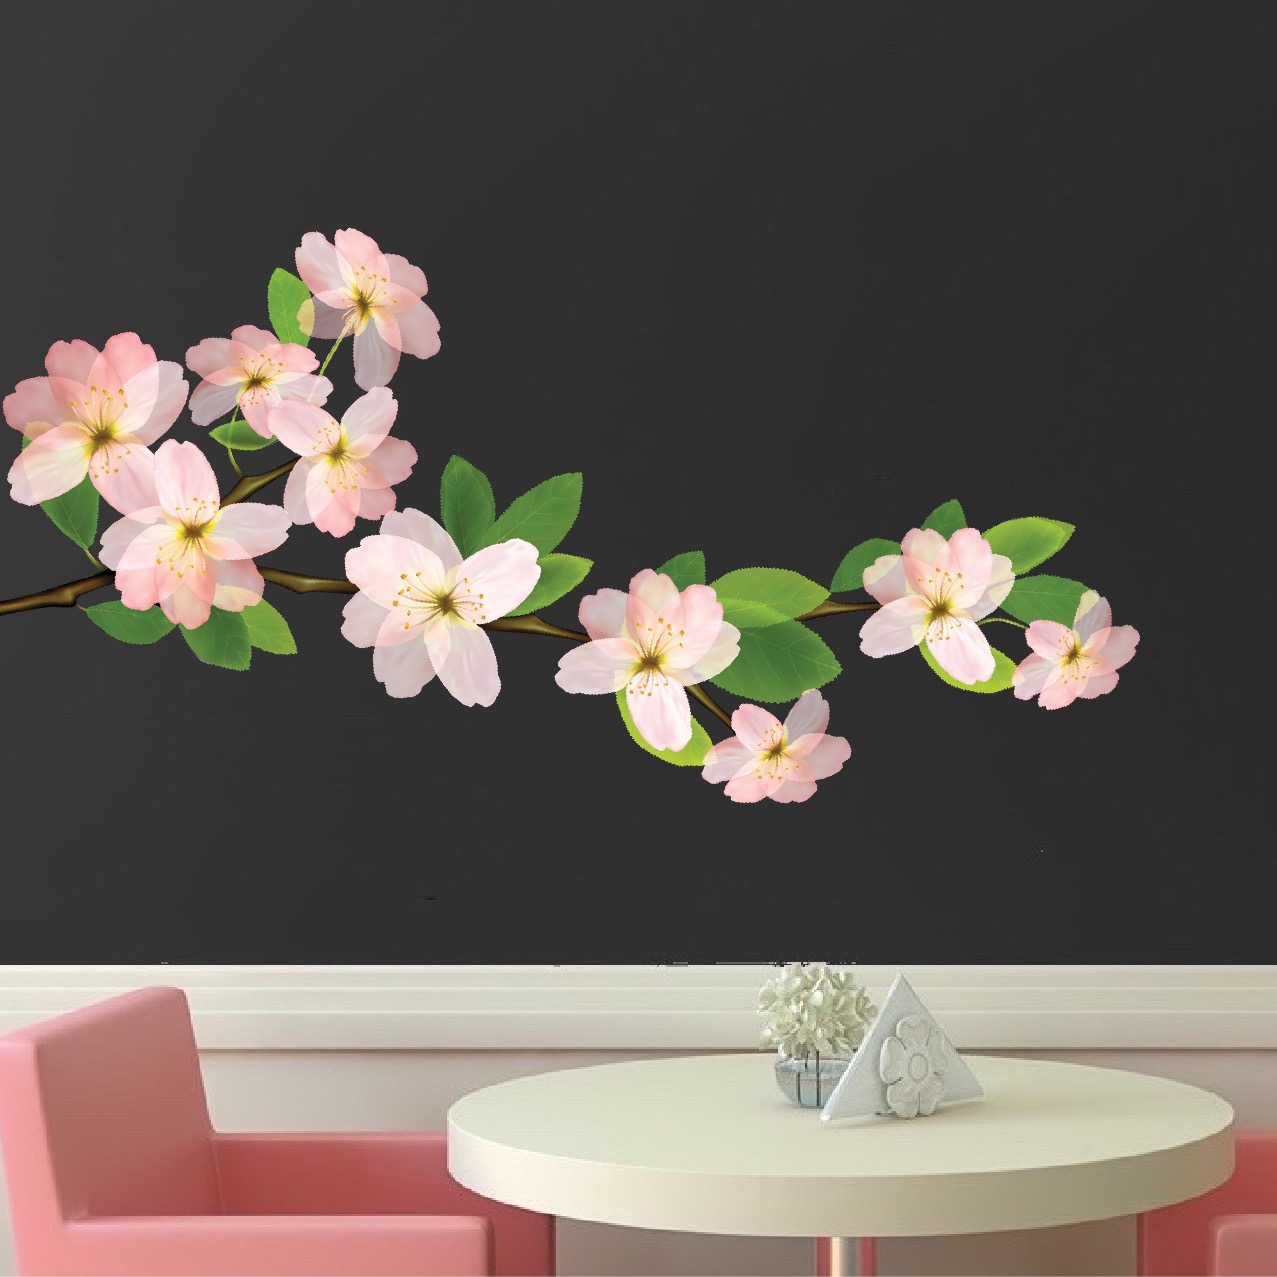 Fullsize Of Flower Wall Decals